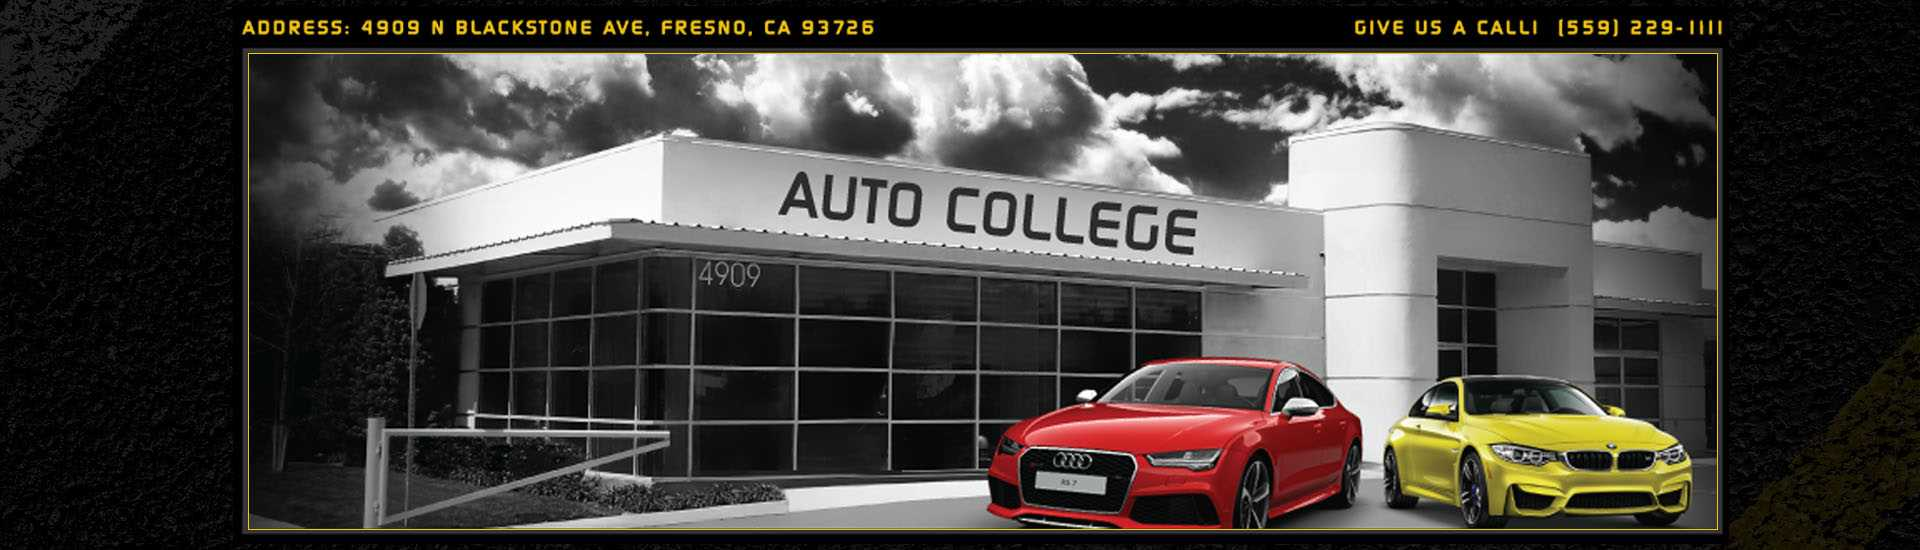 Cars For Sale In Fresno Ca >> Auto College Fresno Ca New Used Cars Trucks Sales